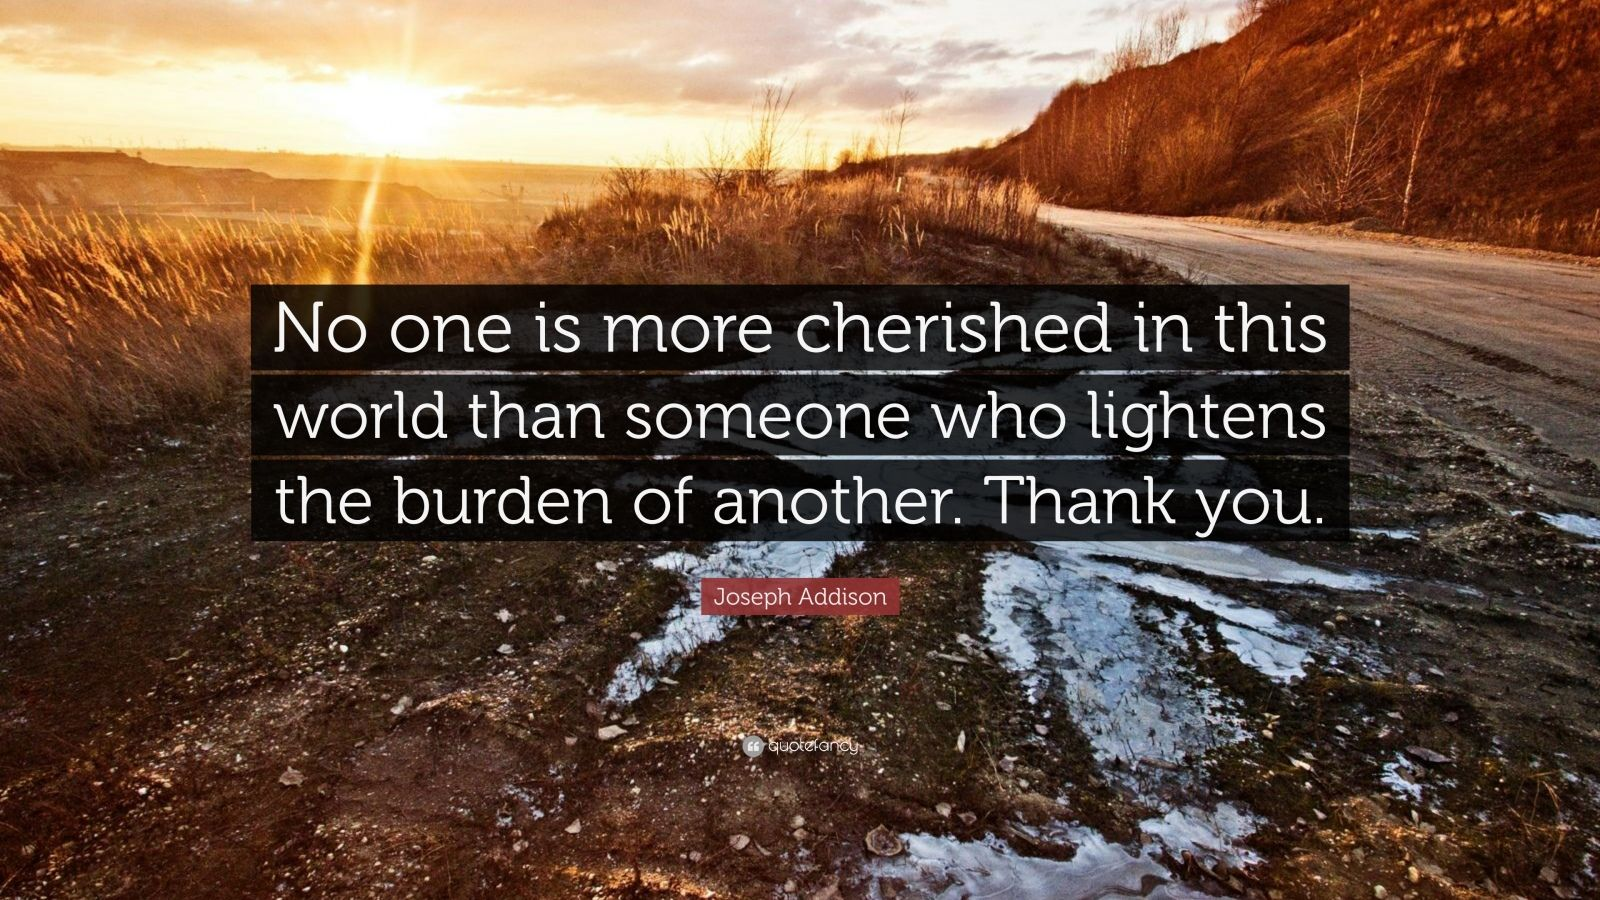 """Joseph Addison Quote: """"No one is more cherished in this world than someone who lightens the burden of another. Thank you."""""""